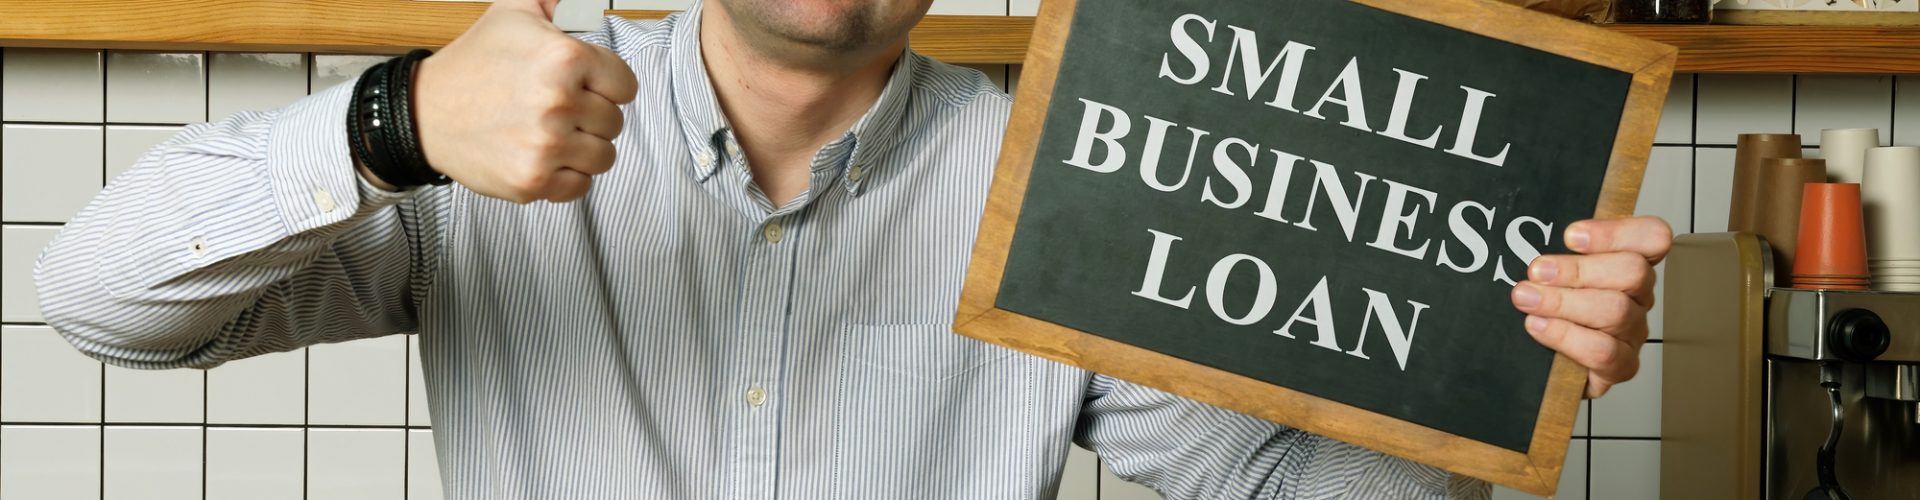 Small business loan in the businessman hands.